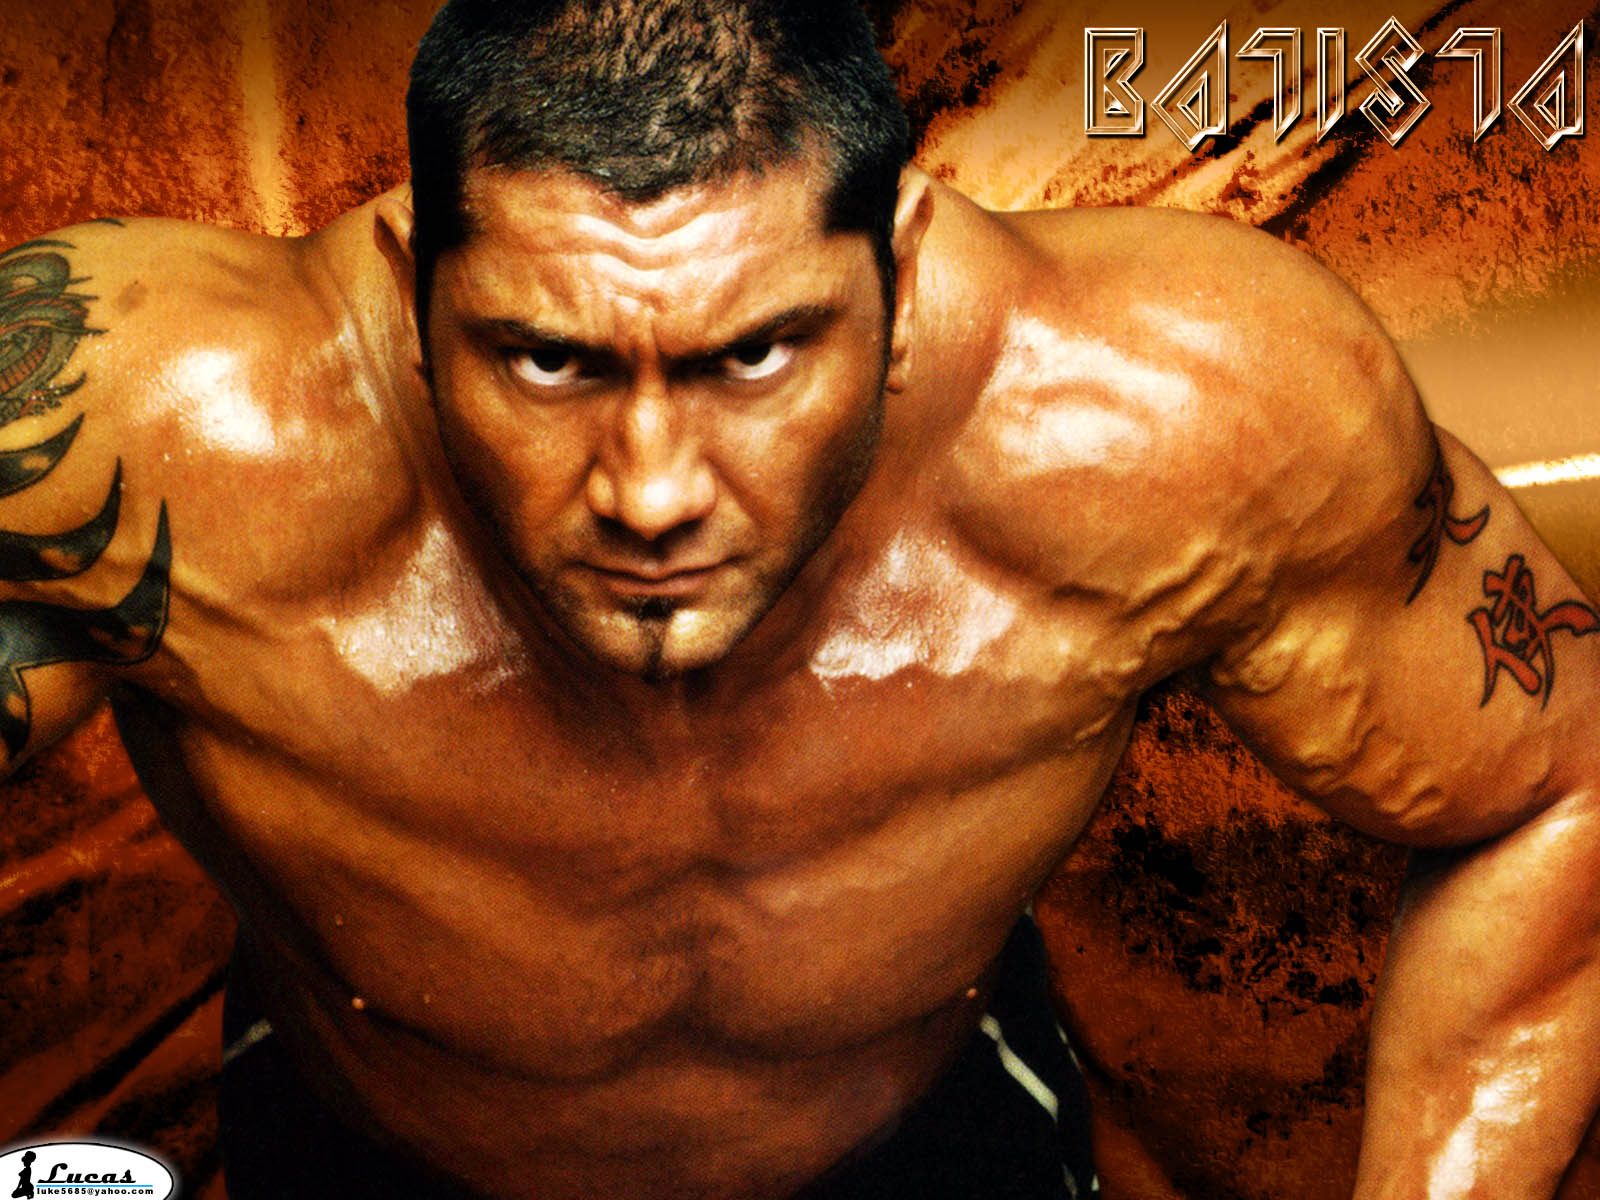 You are viewing the Wrestling wallpaper named Wrestling 46.